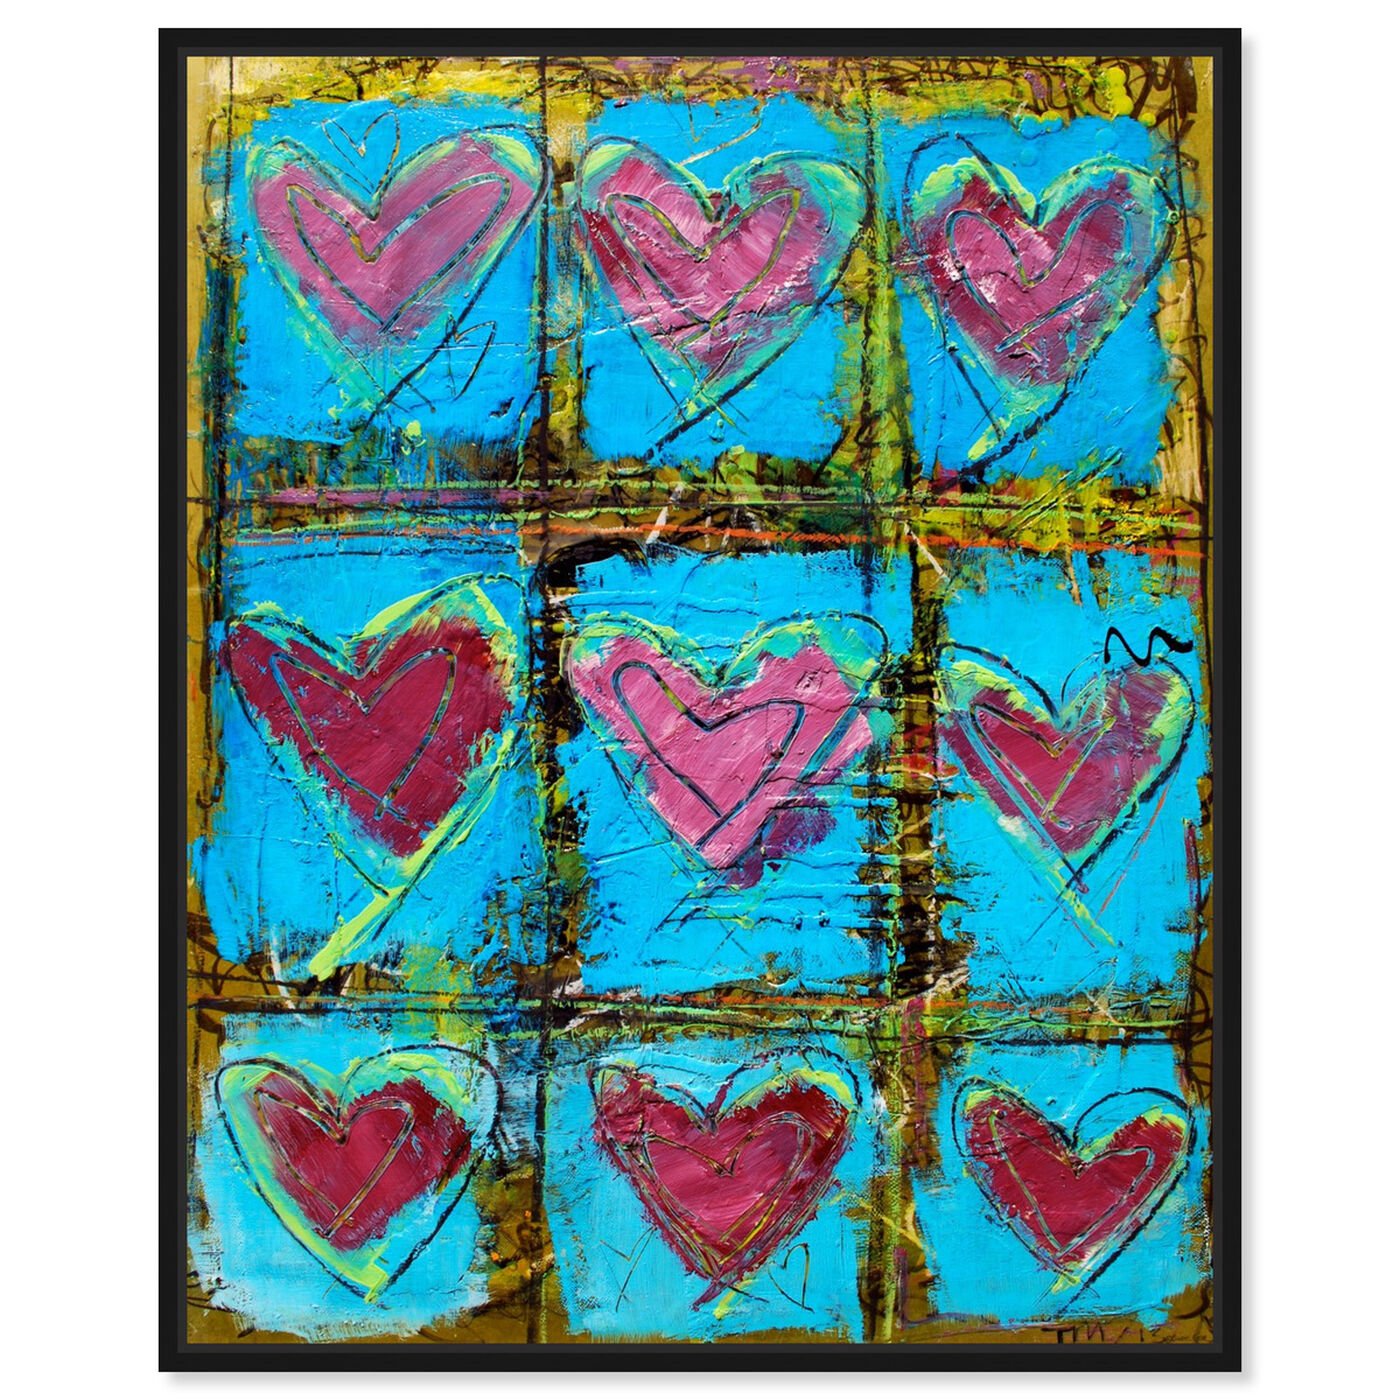 Front view of LoveTEAL by Tiago Magro featuring abstract and textures art.